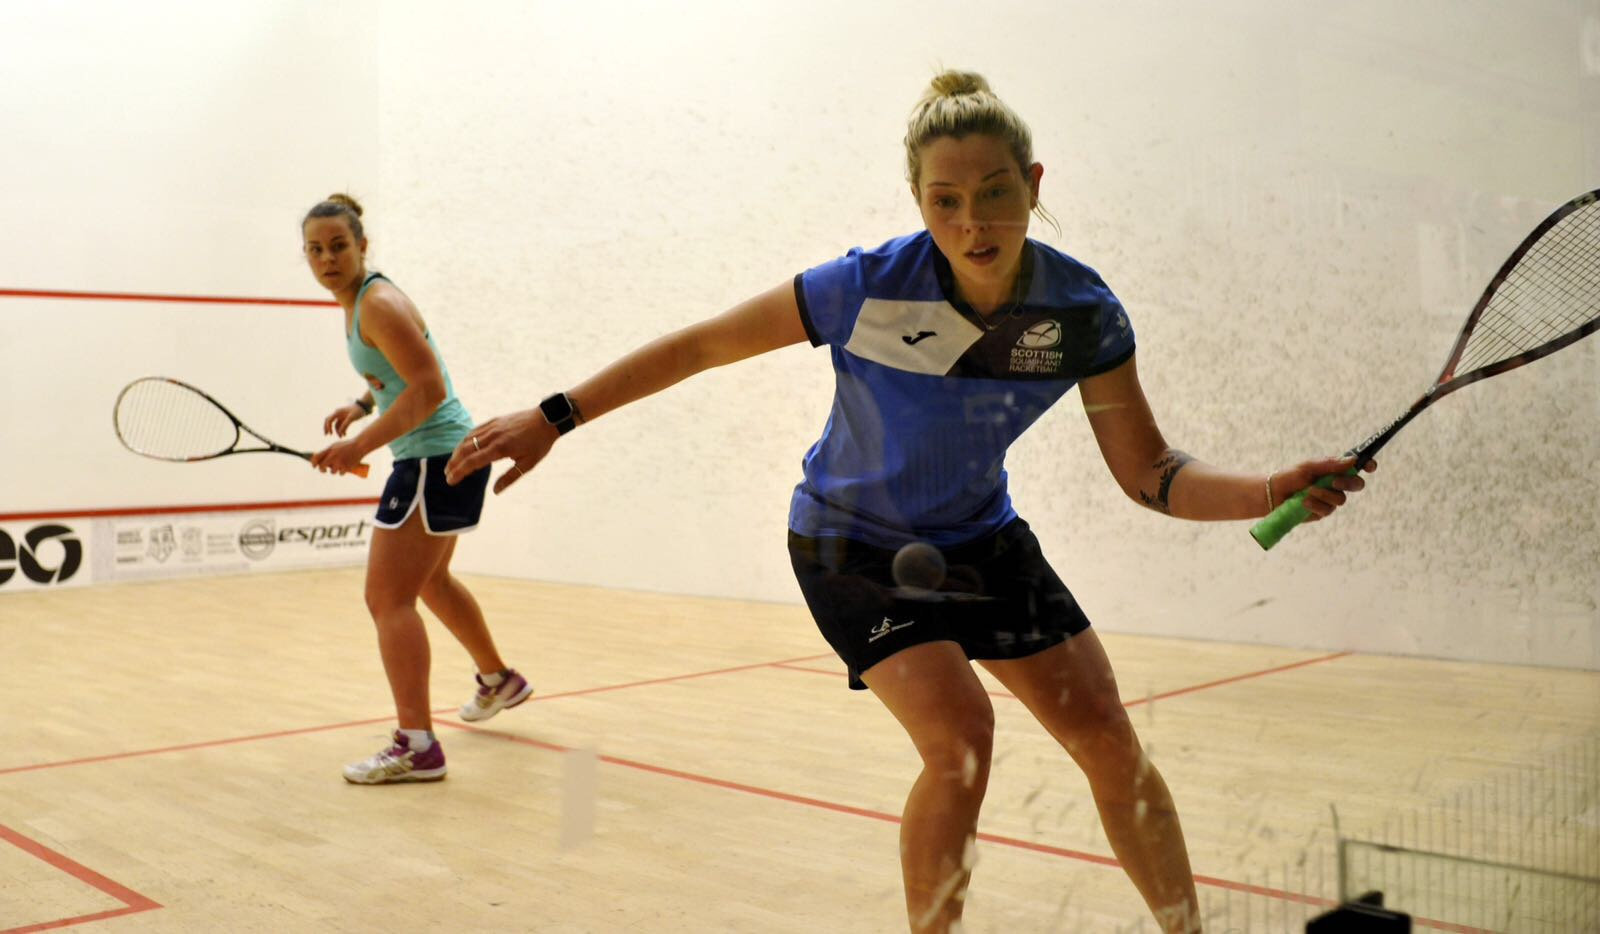 Lisa Aitken, right, is one of Scotland's top female squash players